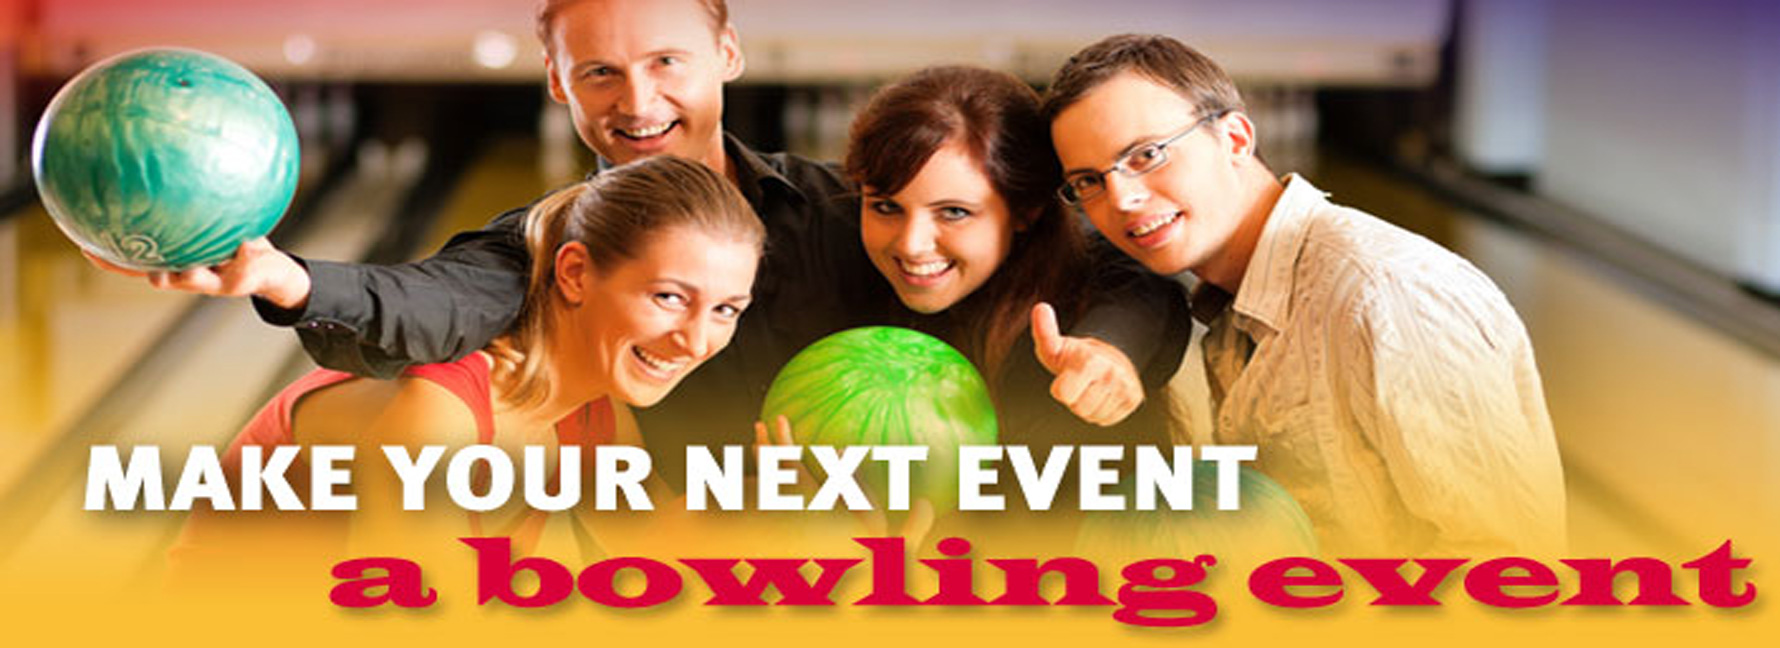 Bowling Party Event